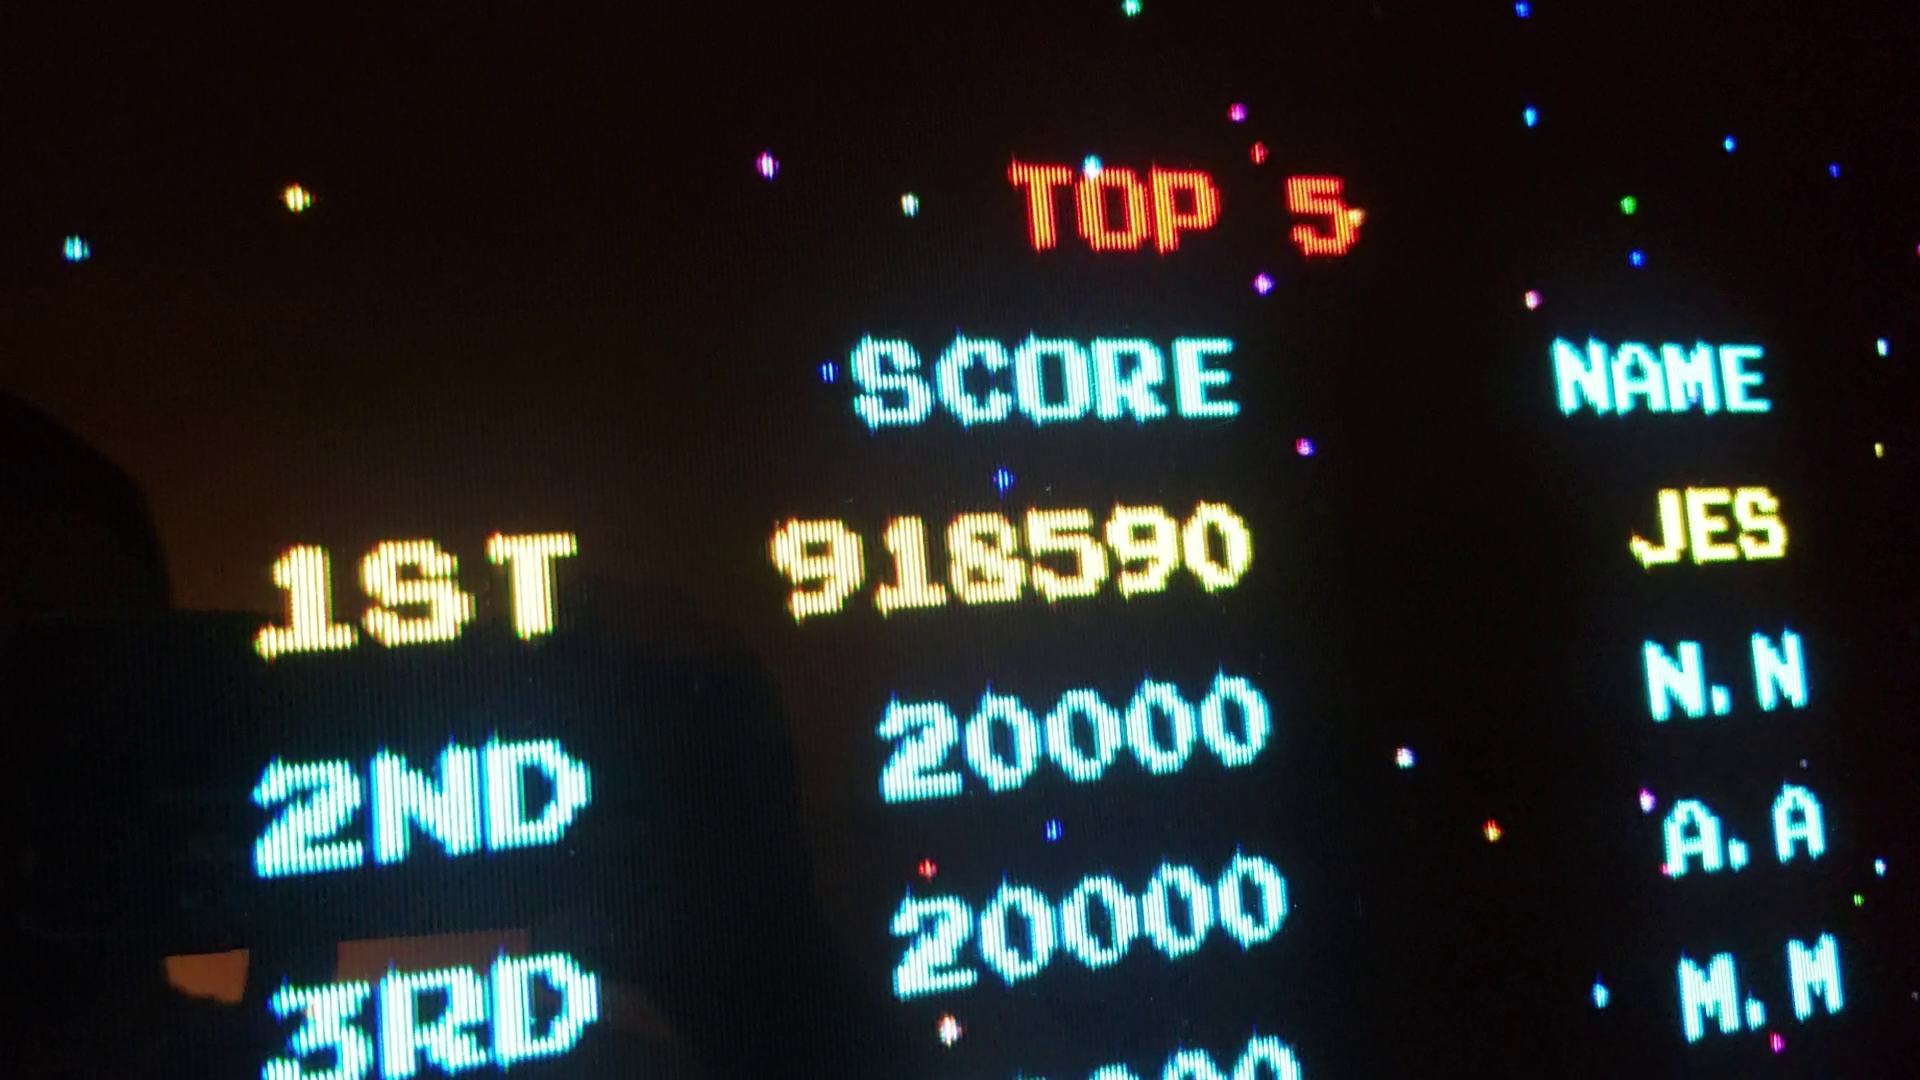 JES: Galaga: Fast Shoot [galagamf] (Arcade Emulated / M.A.M.E.) 1,918,590 points on 2020-01-18 03:05:50